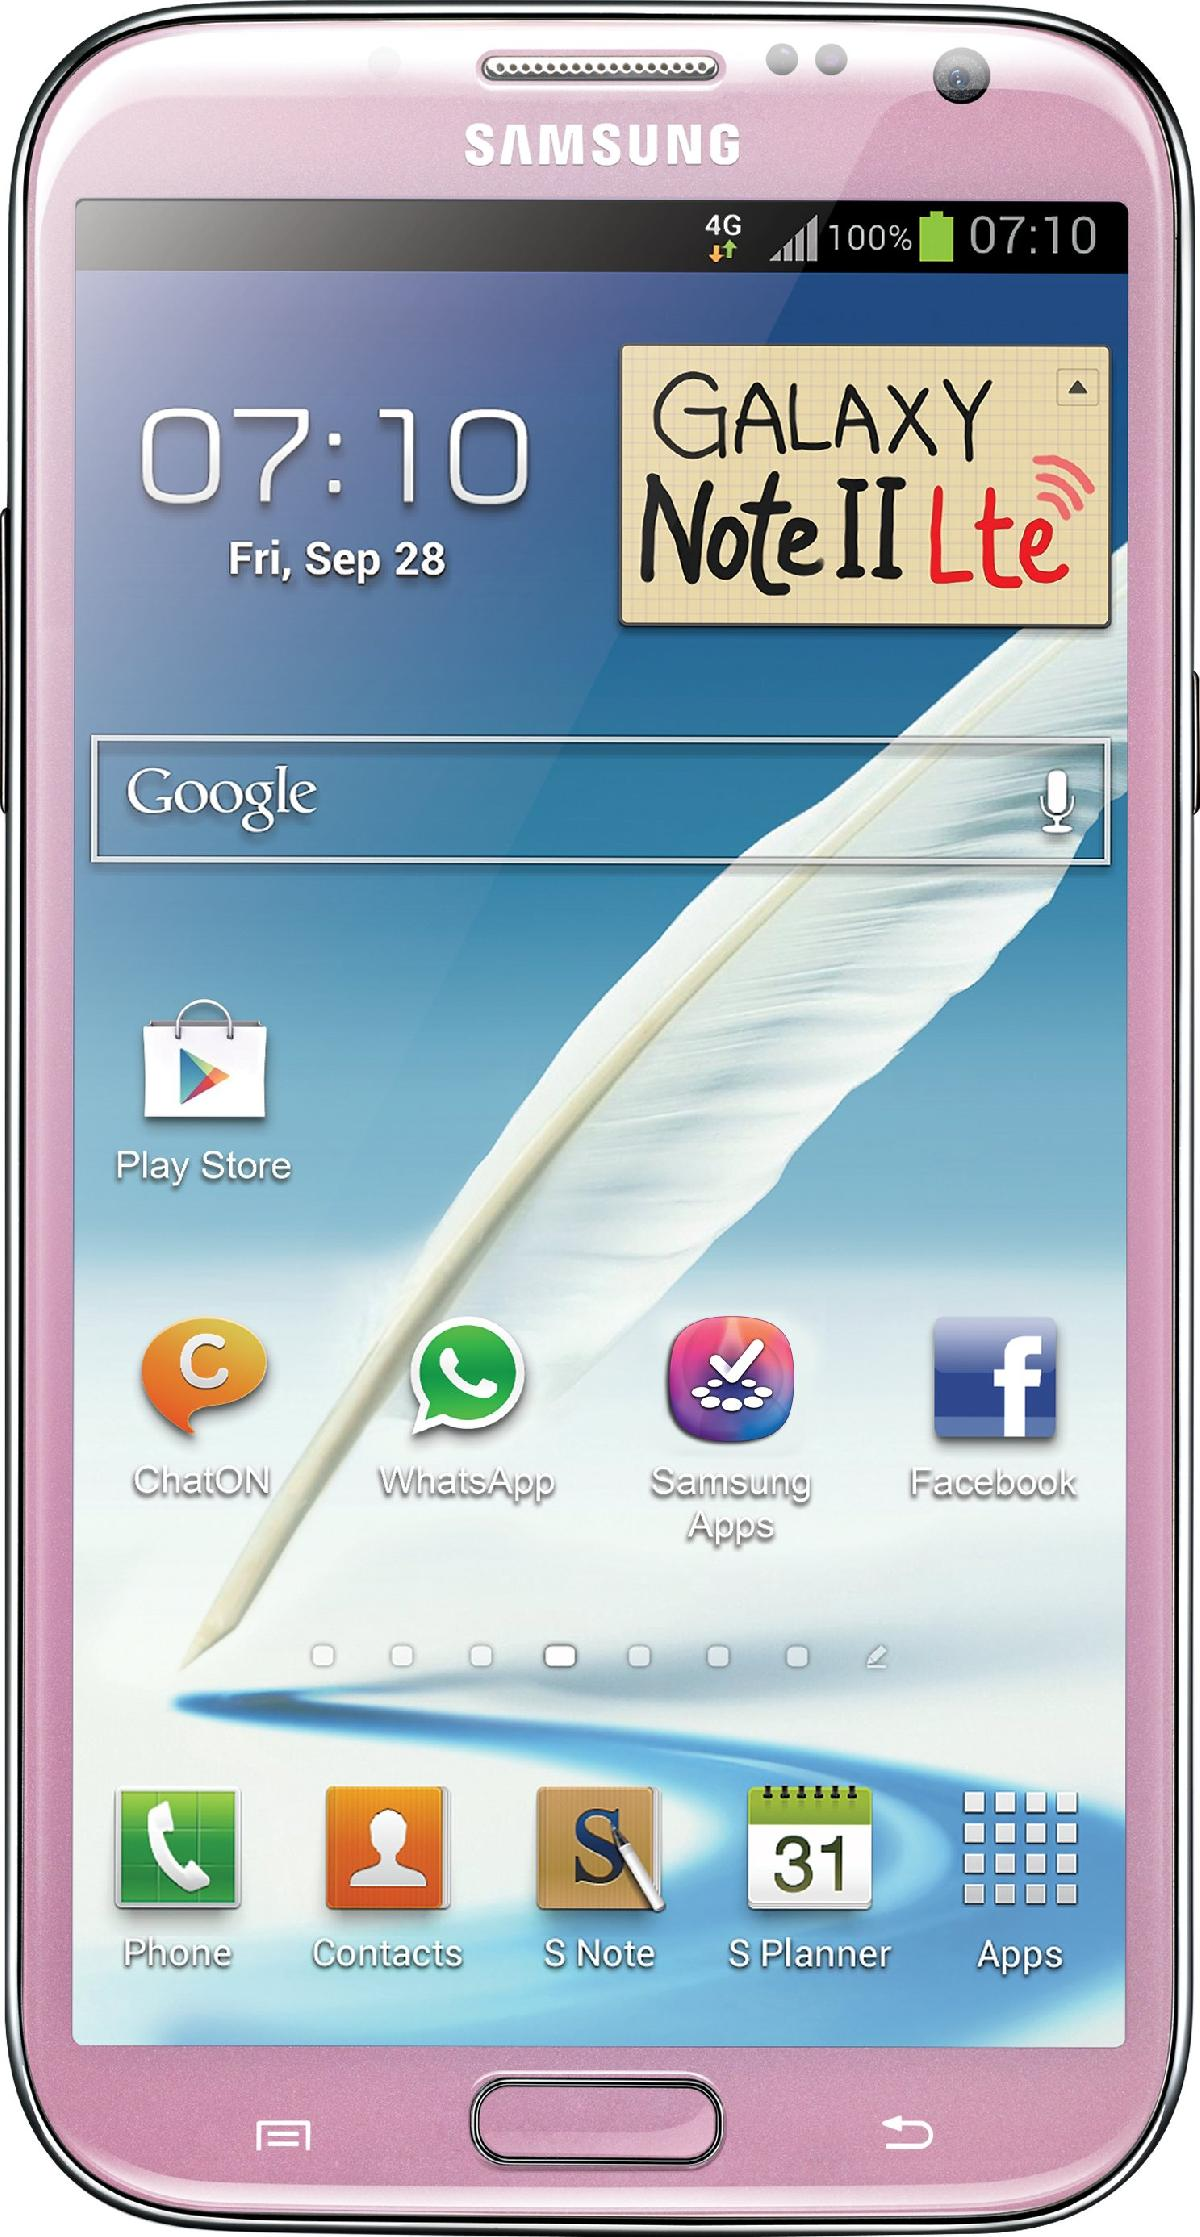 Galaxy Note 2 LTE (International) GT-N7105